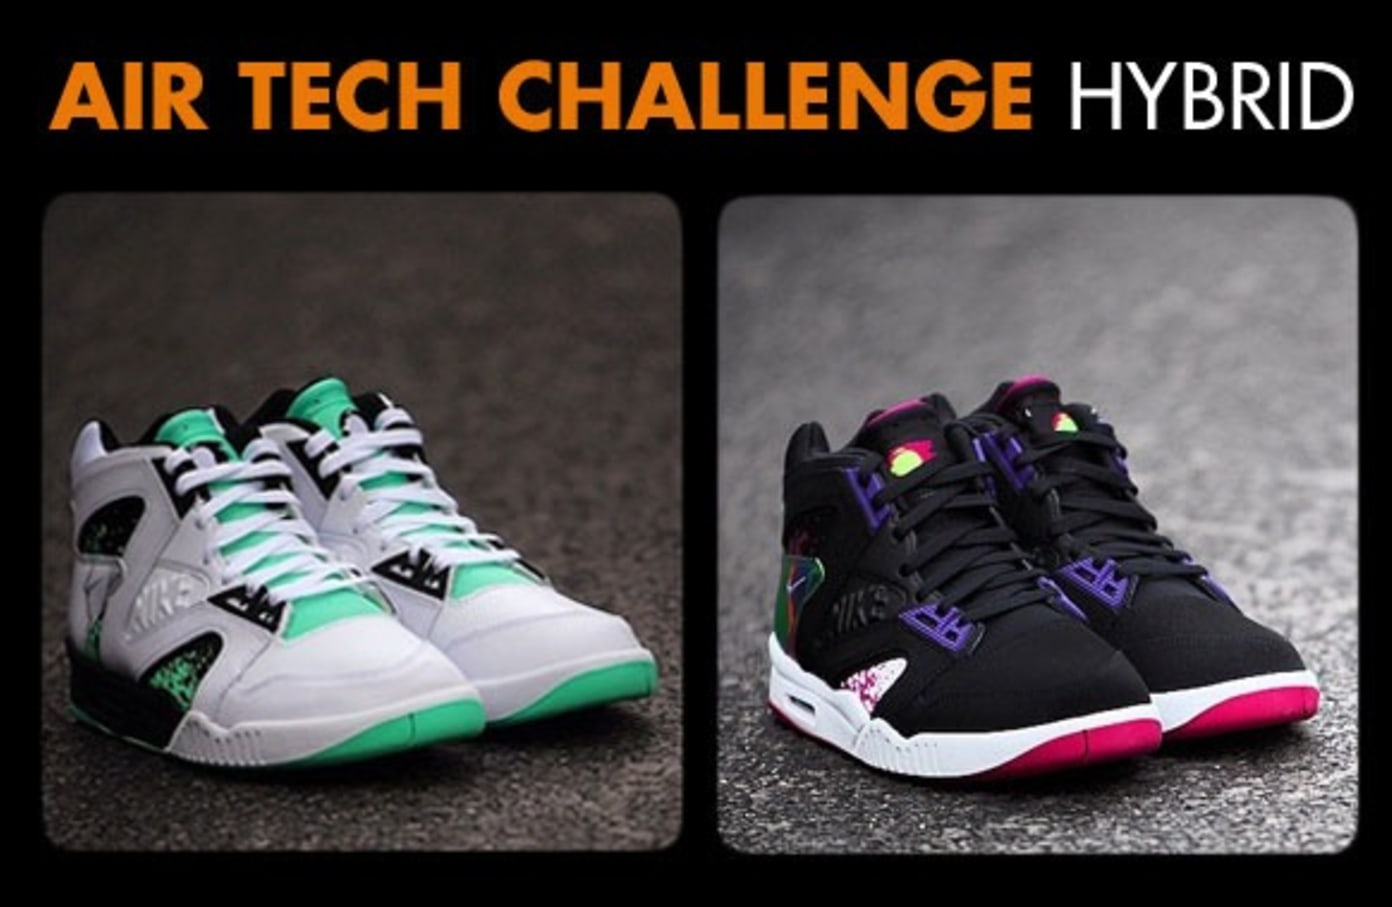 Coming Soon to Shelflife: The Nike Air Tech Challenge Hybrid